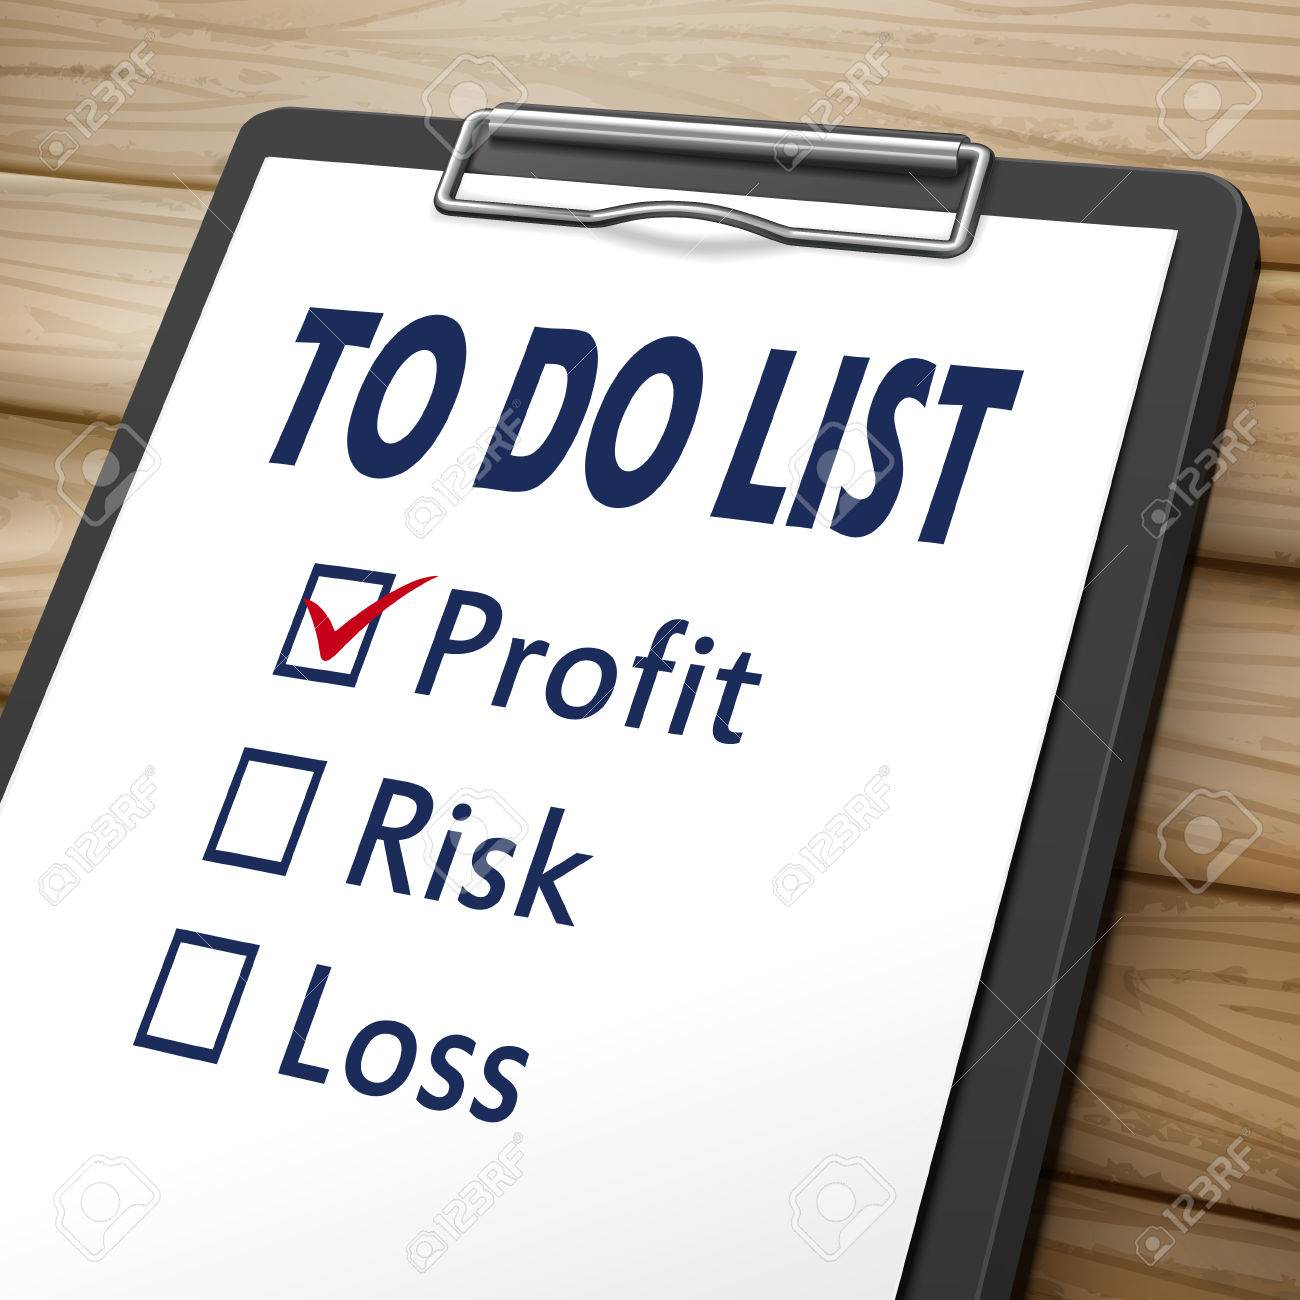 to do list clipboard 3d image with check boxes marked for profit